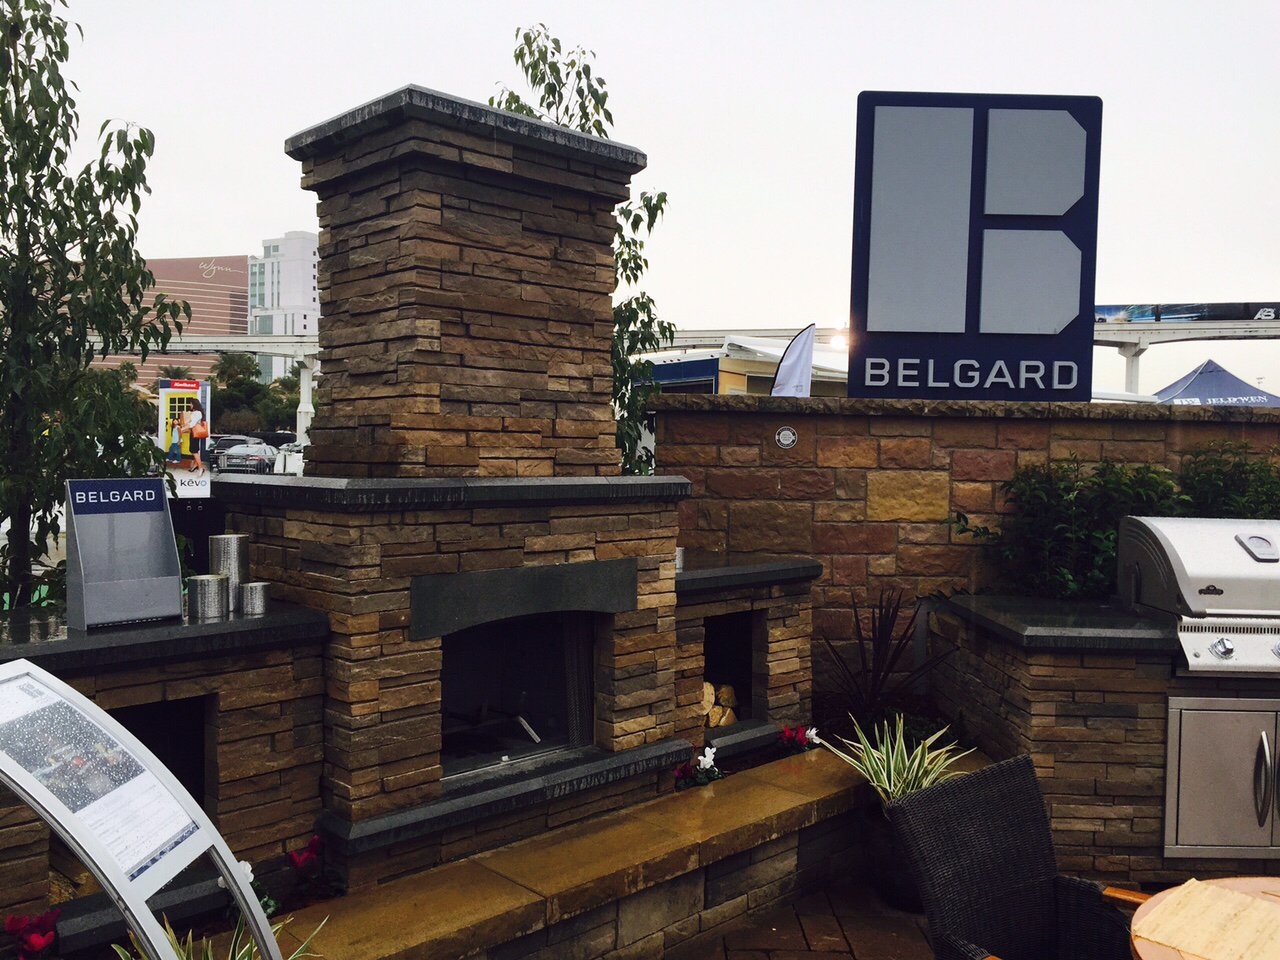 Bordeaux Grill Islands, Fireplaces & Brick Ovens will make your #outdoorlivingspace the ultimate spot! #IBSVegas! https://t.co/Y7zzF09JEP